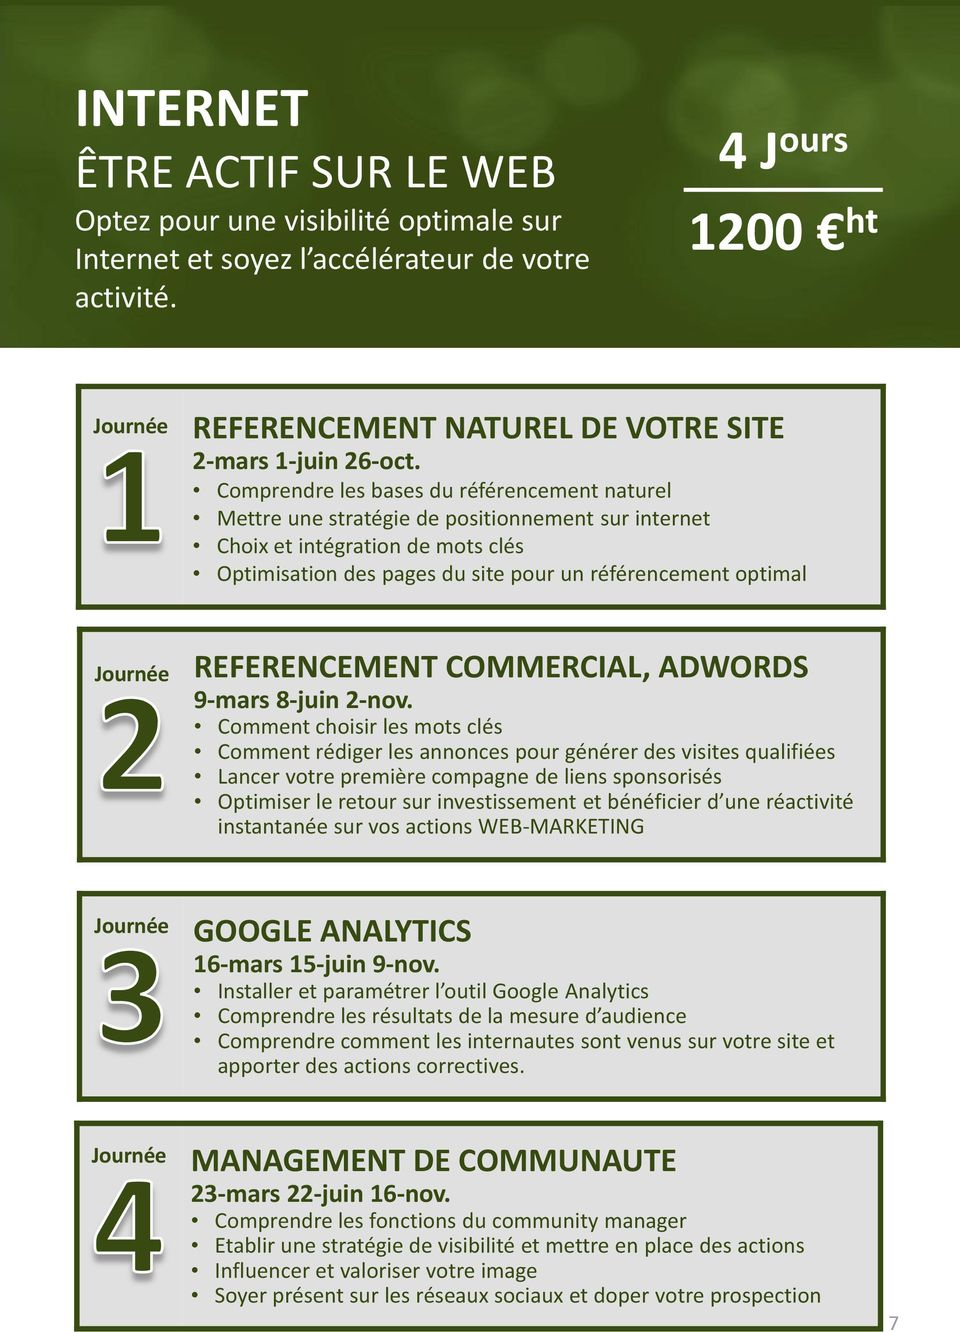 REFERENCEMENT COMMERCIAL, ADWORDS 9-mars 8-juin 2-nov.